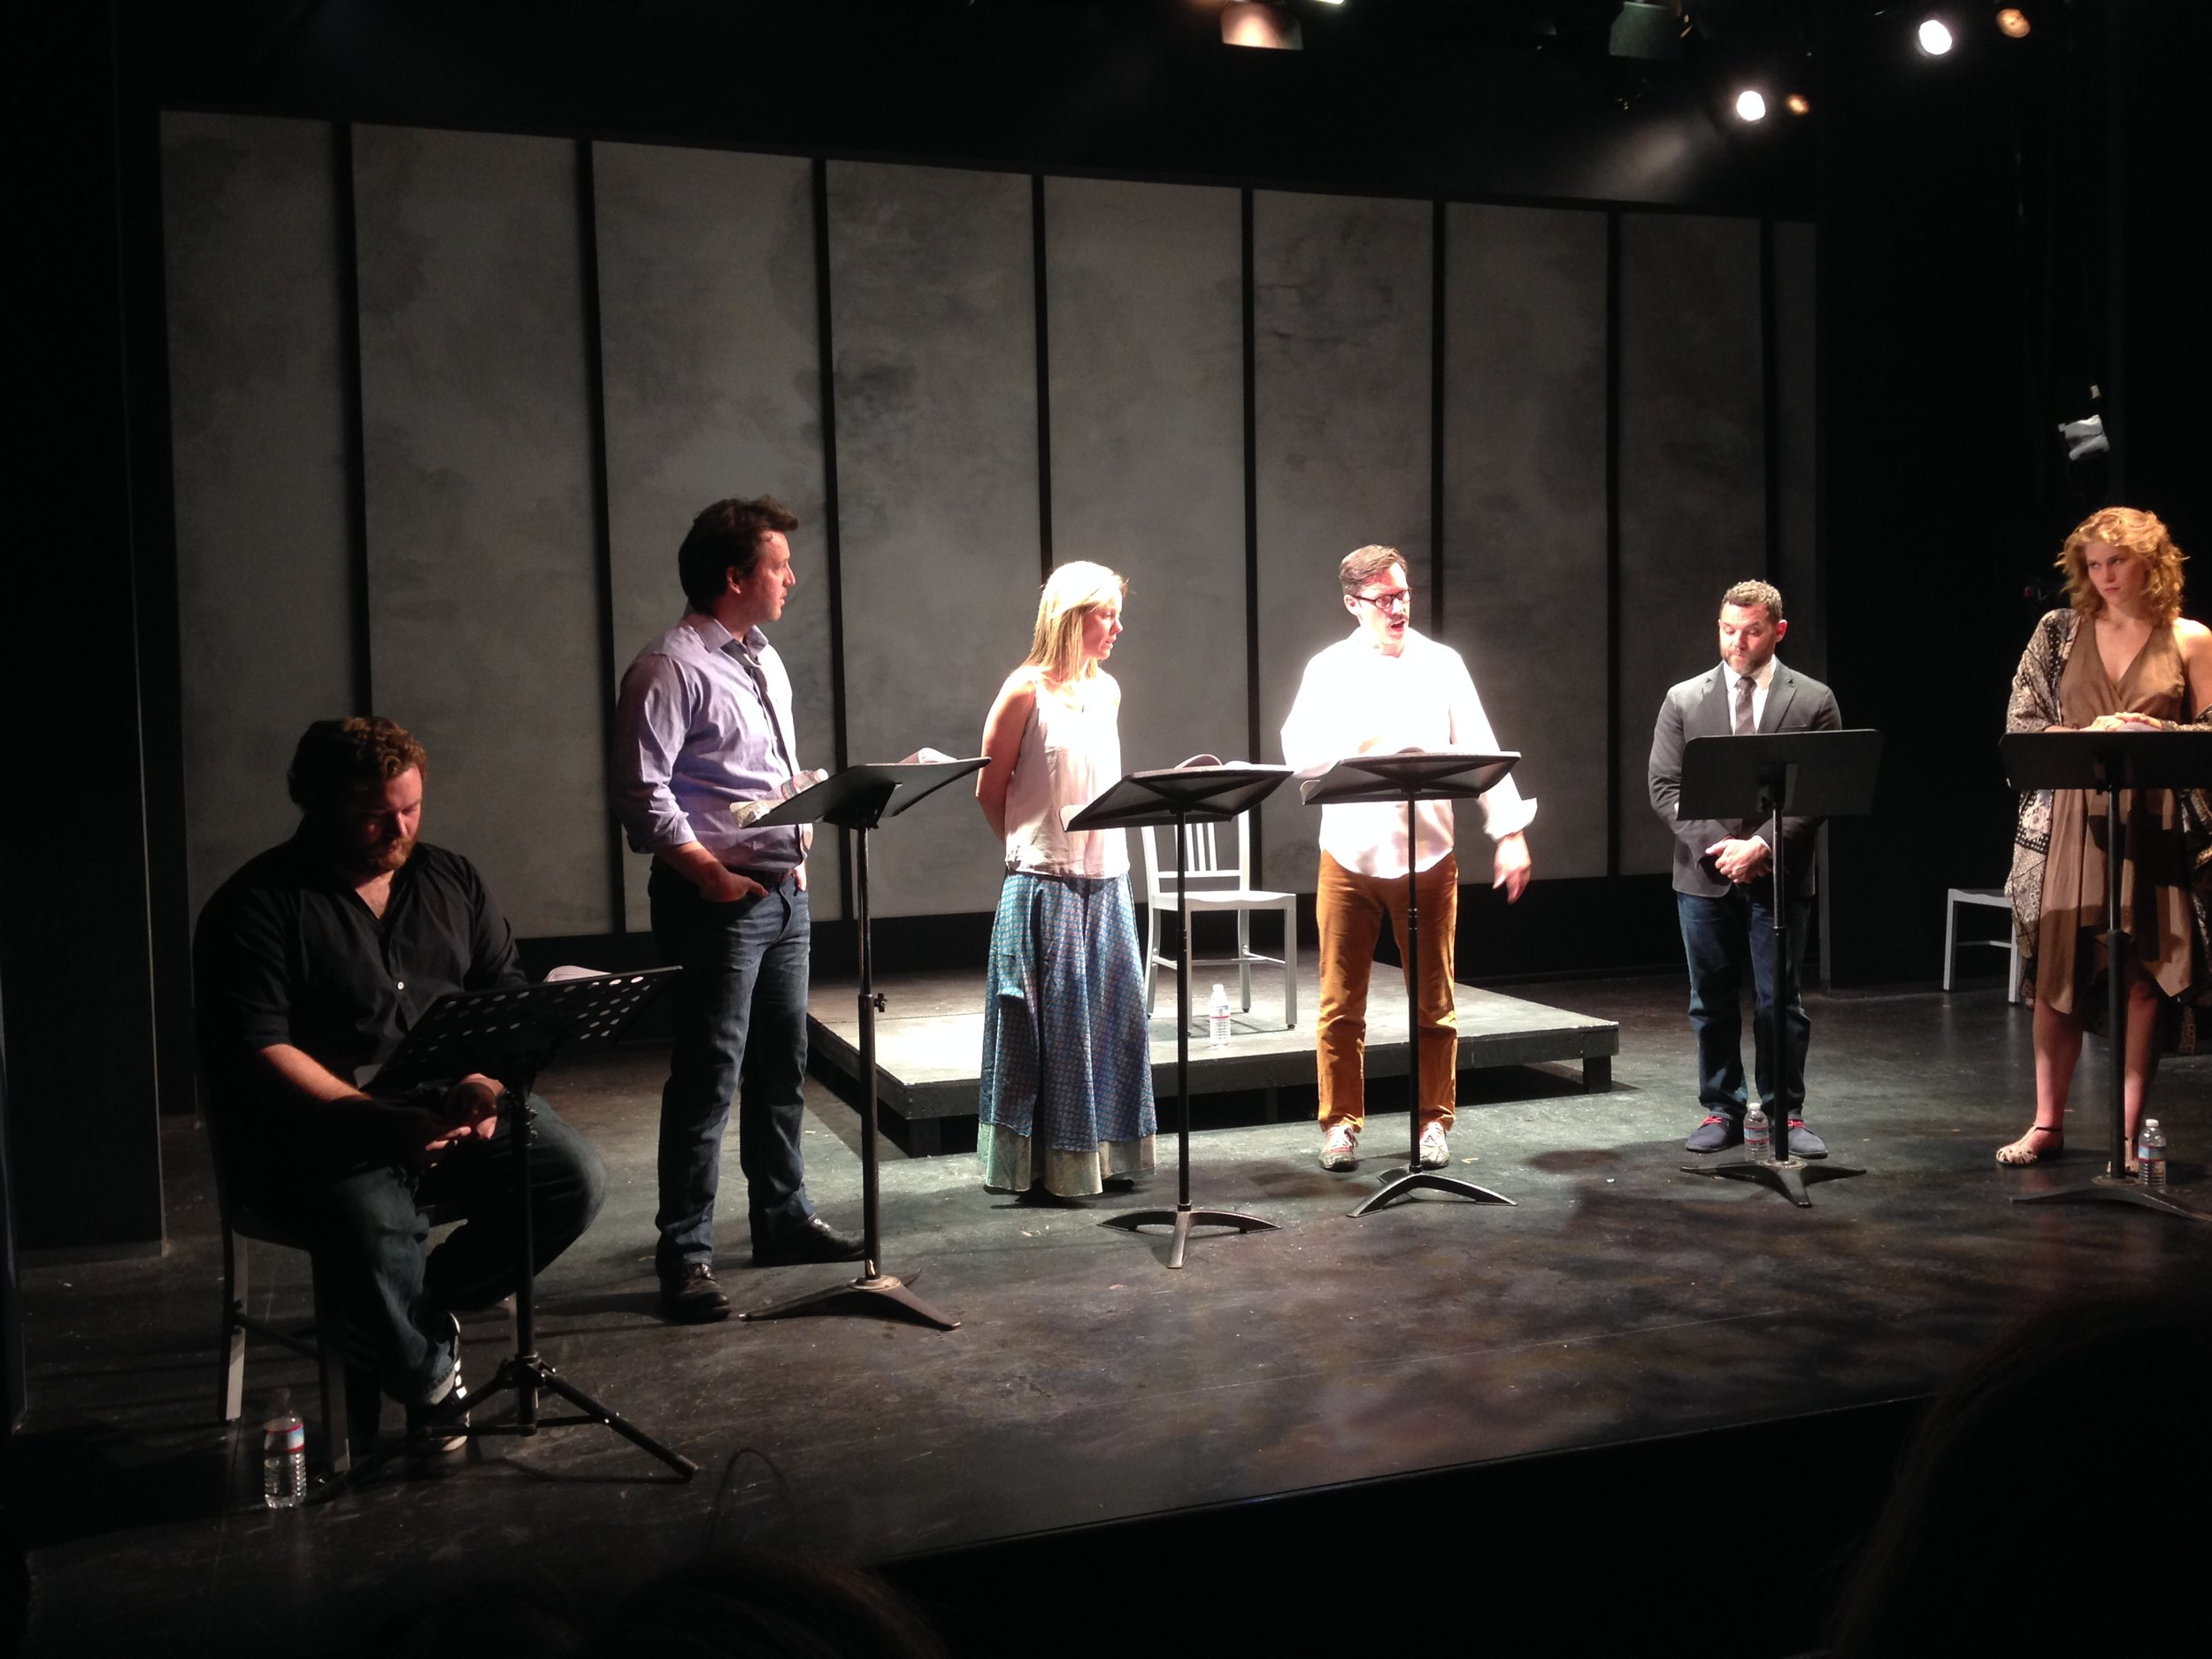 """The third reading of """"The Elephant in the Room"""" was performed at The Road Theatre on April 6, 2015. Left to Right: Kevin Shipp (reading stage direction), John Pollono, Laurie Okin, Tom Musgrave, ????, and Ellie Jameson."""